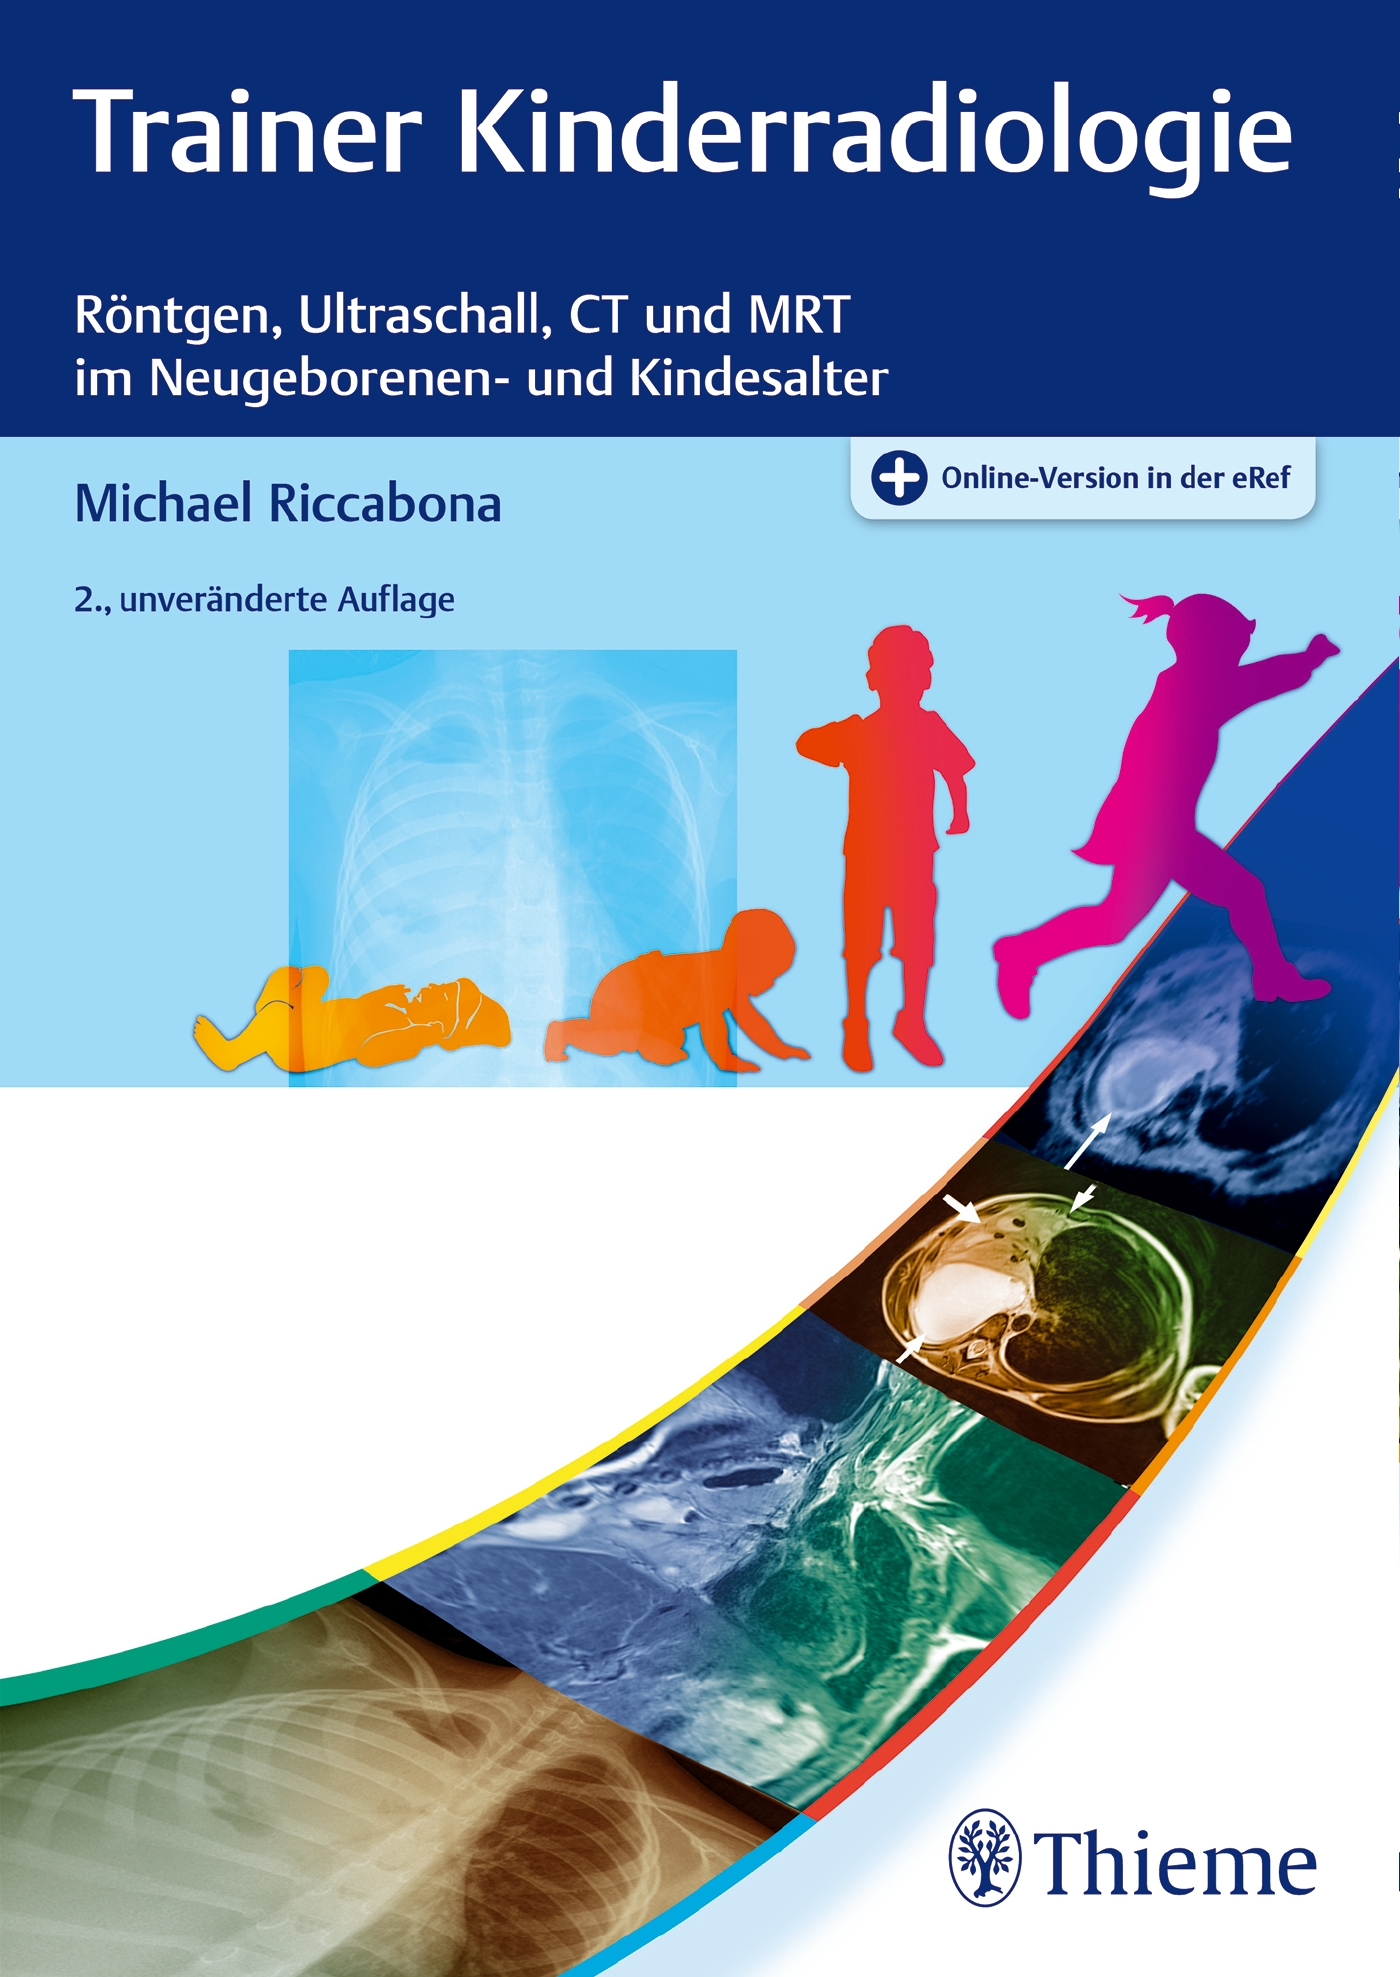 Trainer Kinderradiologie